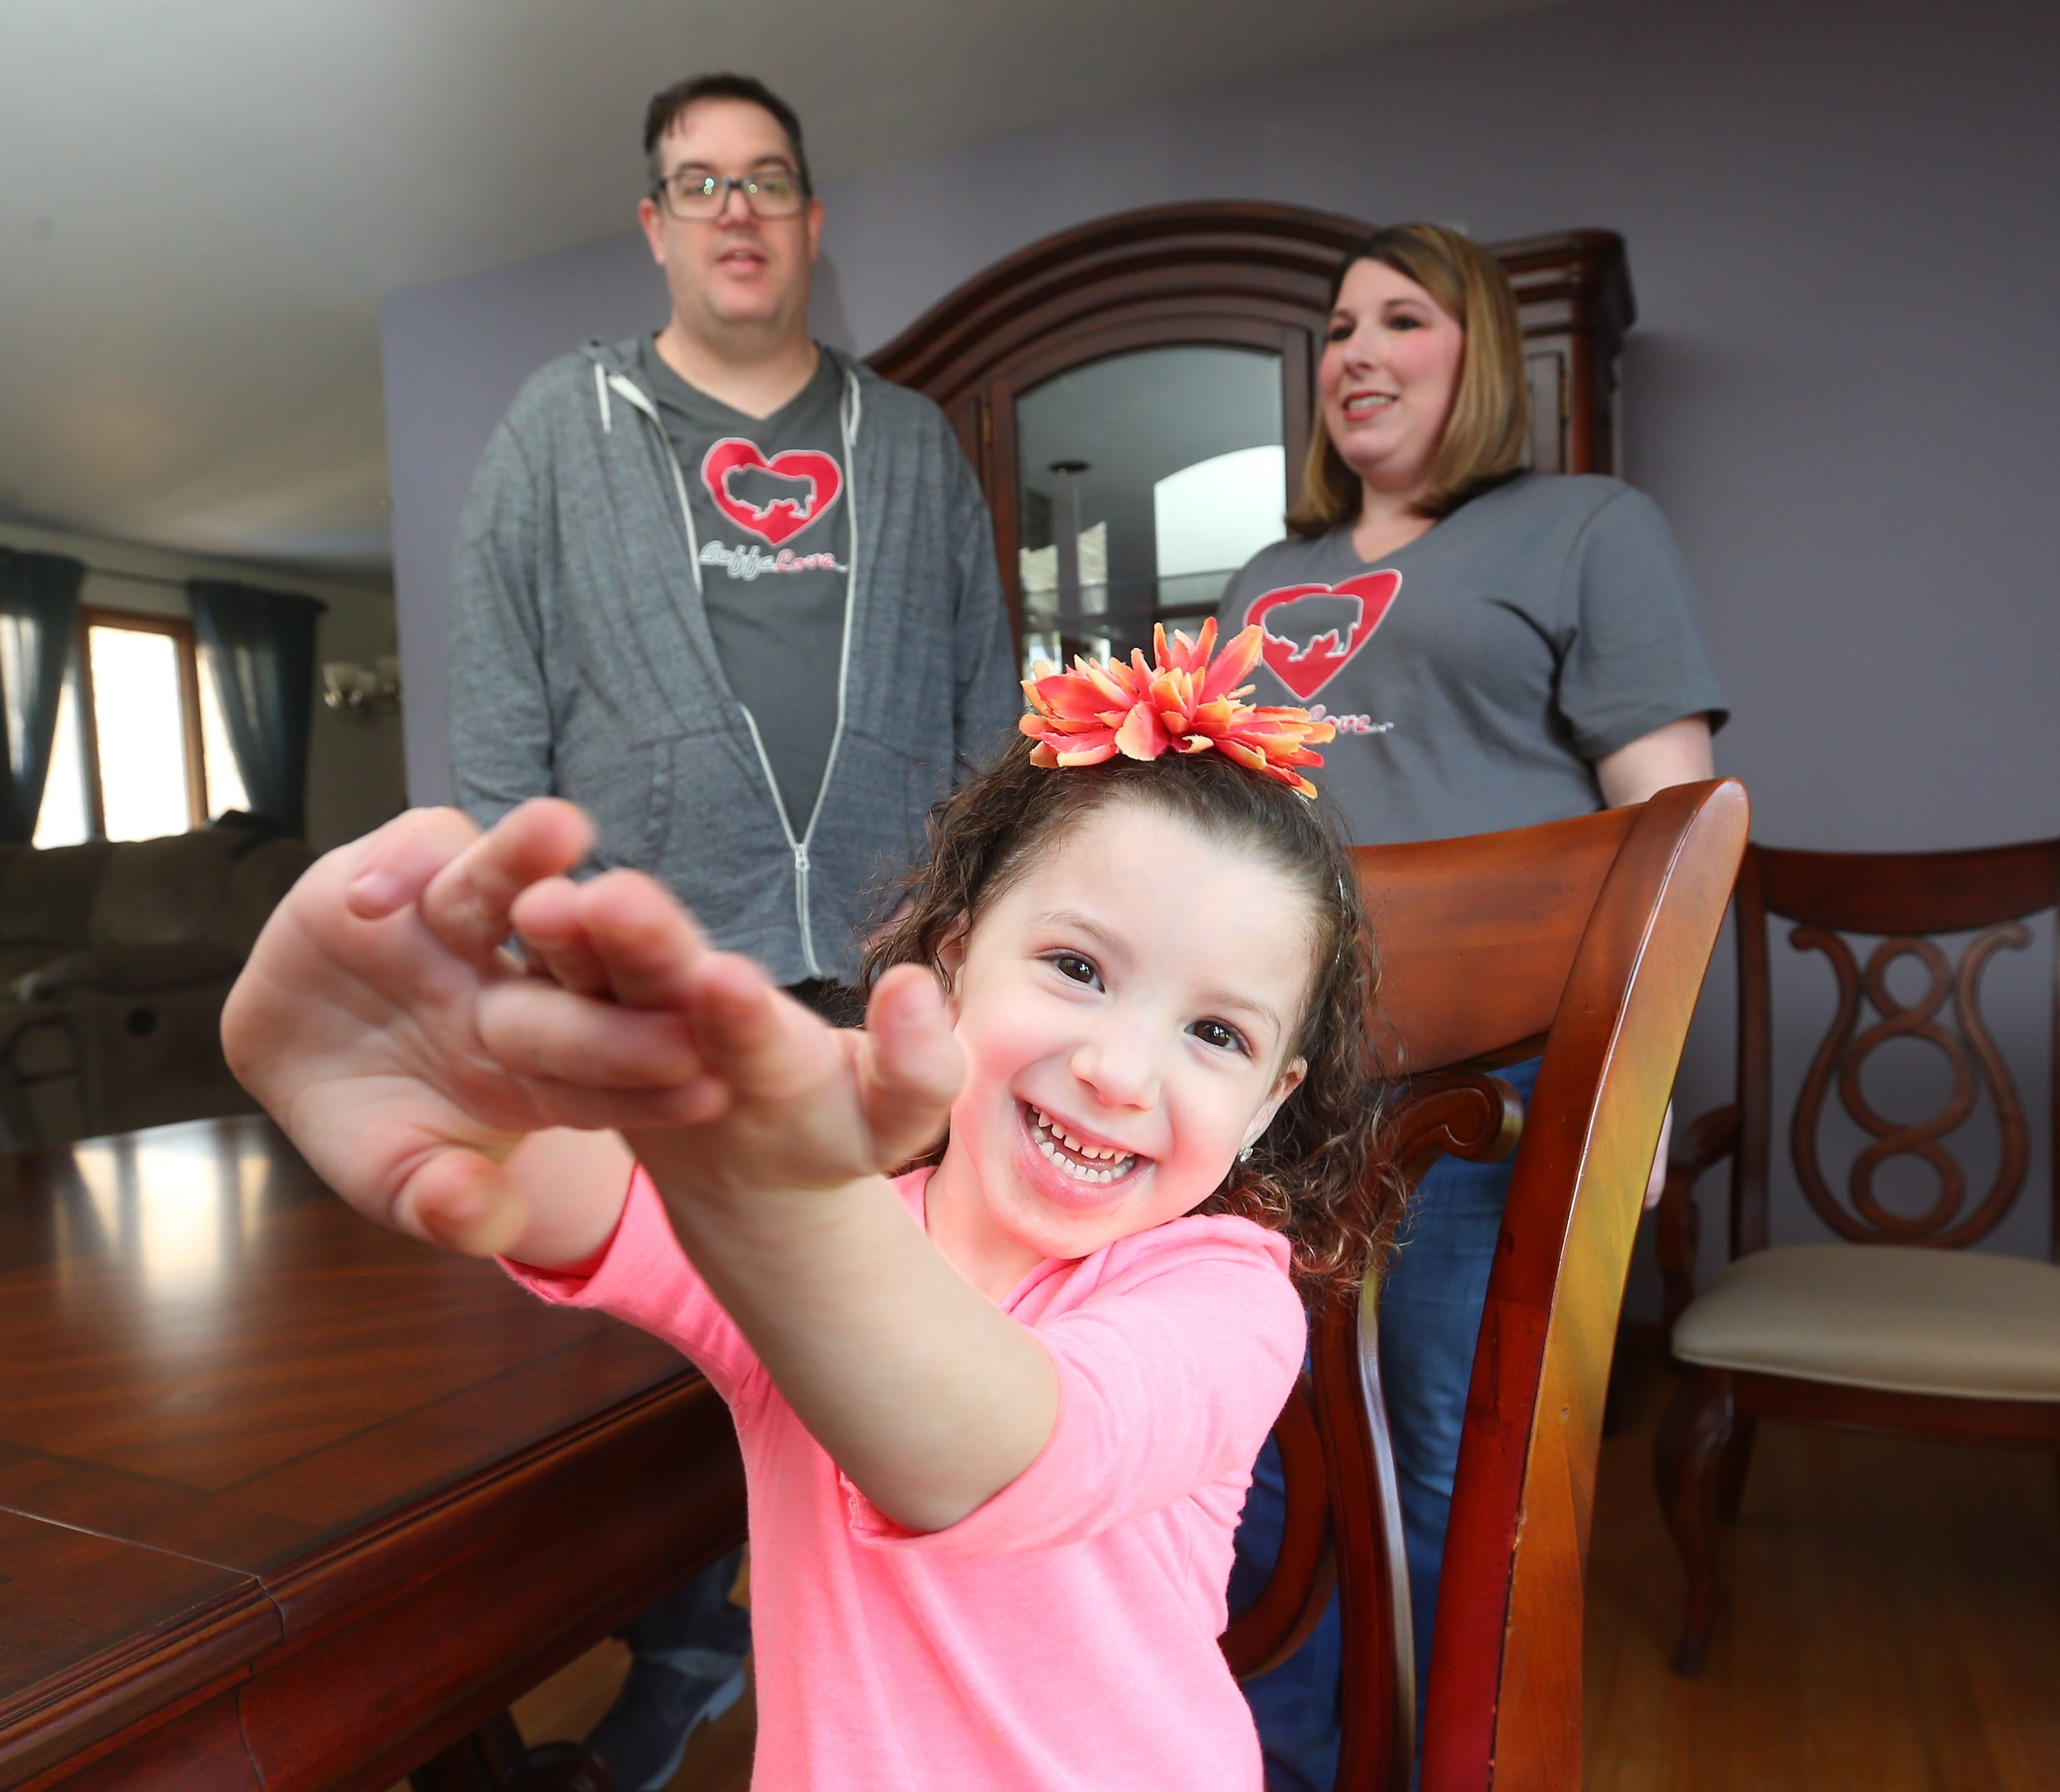 A symbol of hope for family, friends and community, cancer patient Maya Serra, who will turn 4 on May 24, enjoys time at her Lewiston home with mother Renee as they are visited by James Sheehan, who's reaching out to help through his new nonprofit.